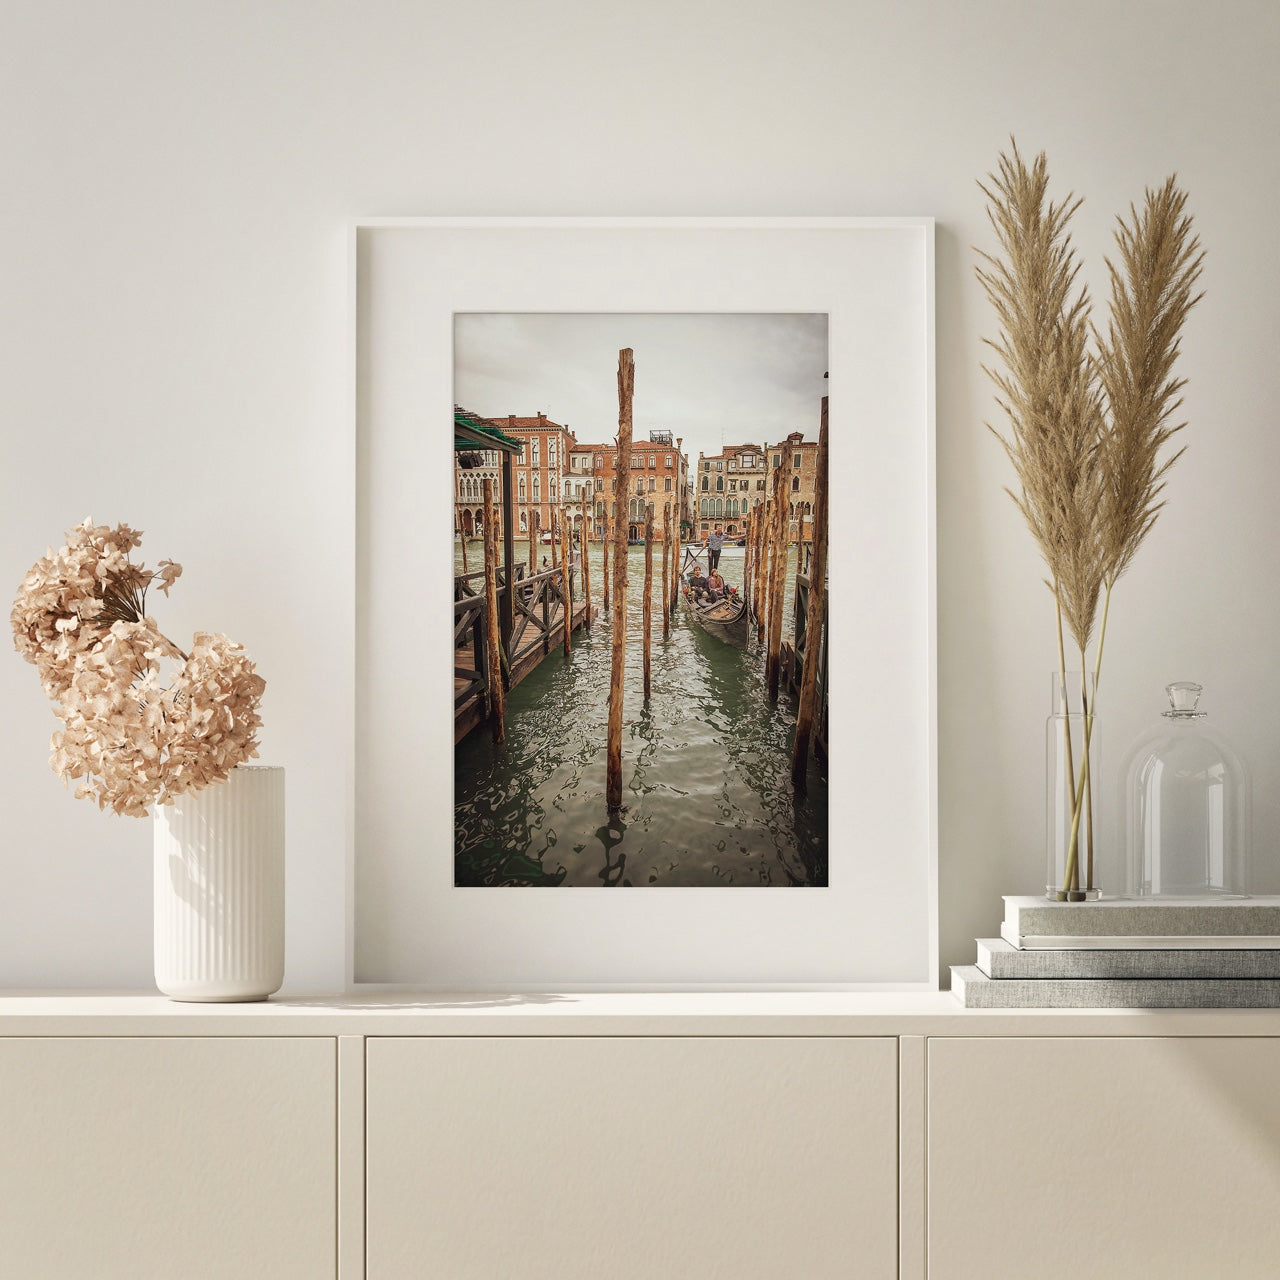 Framed matted print of Italy